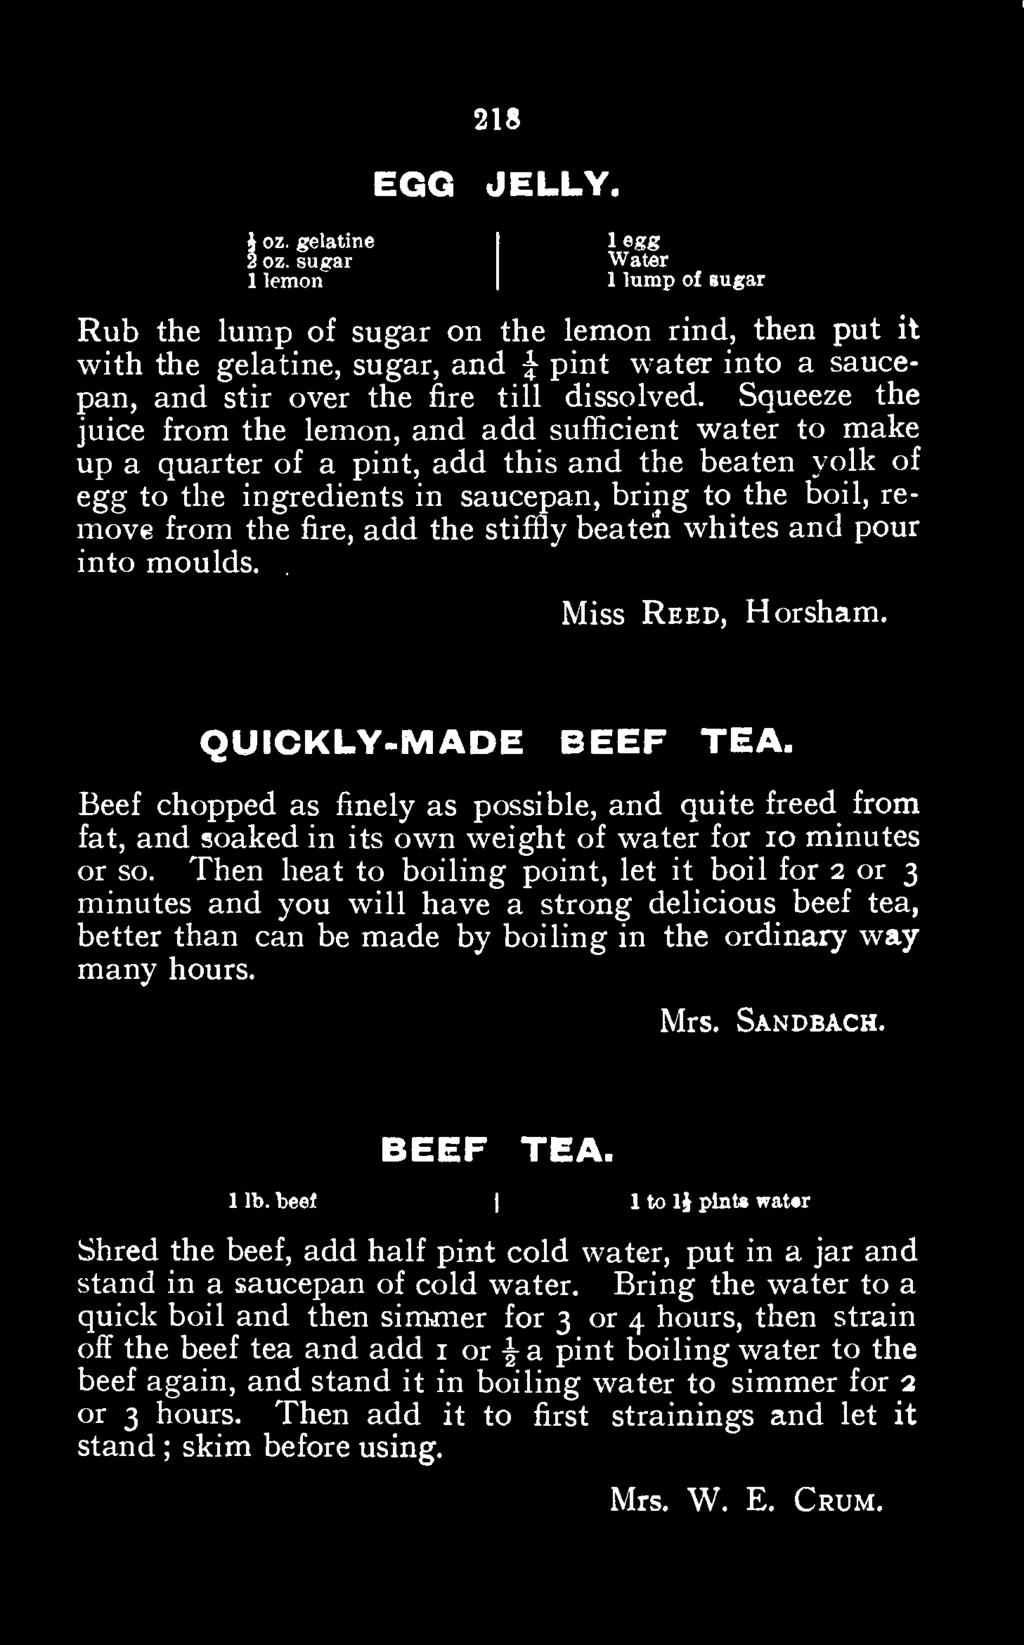 Then heat to boiling point, let it boil for 2 or 3 minutes and you will have a strong delicious beef tea, better than can be made by boiling in the ordinary way many hours. Mrs. Sandbach. BEEF TEA.